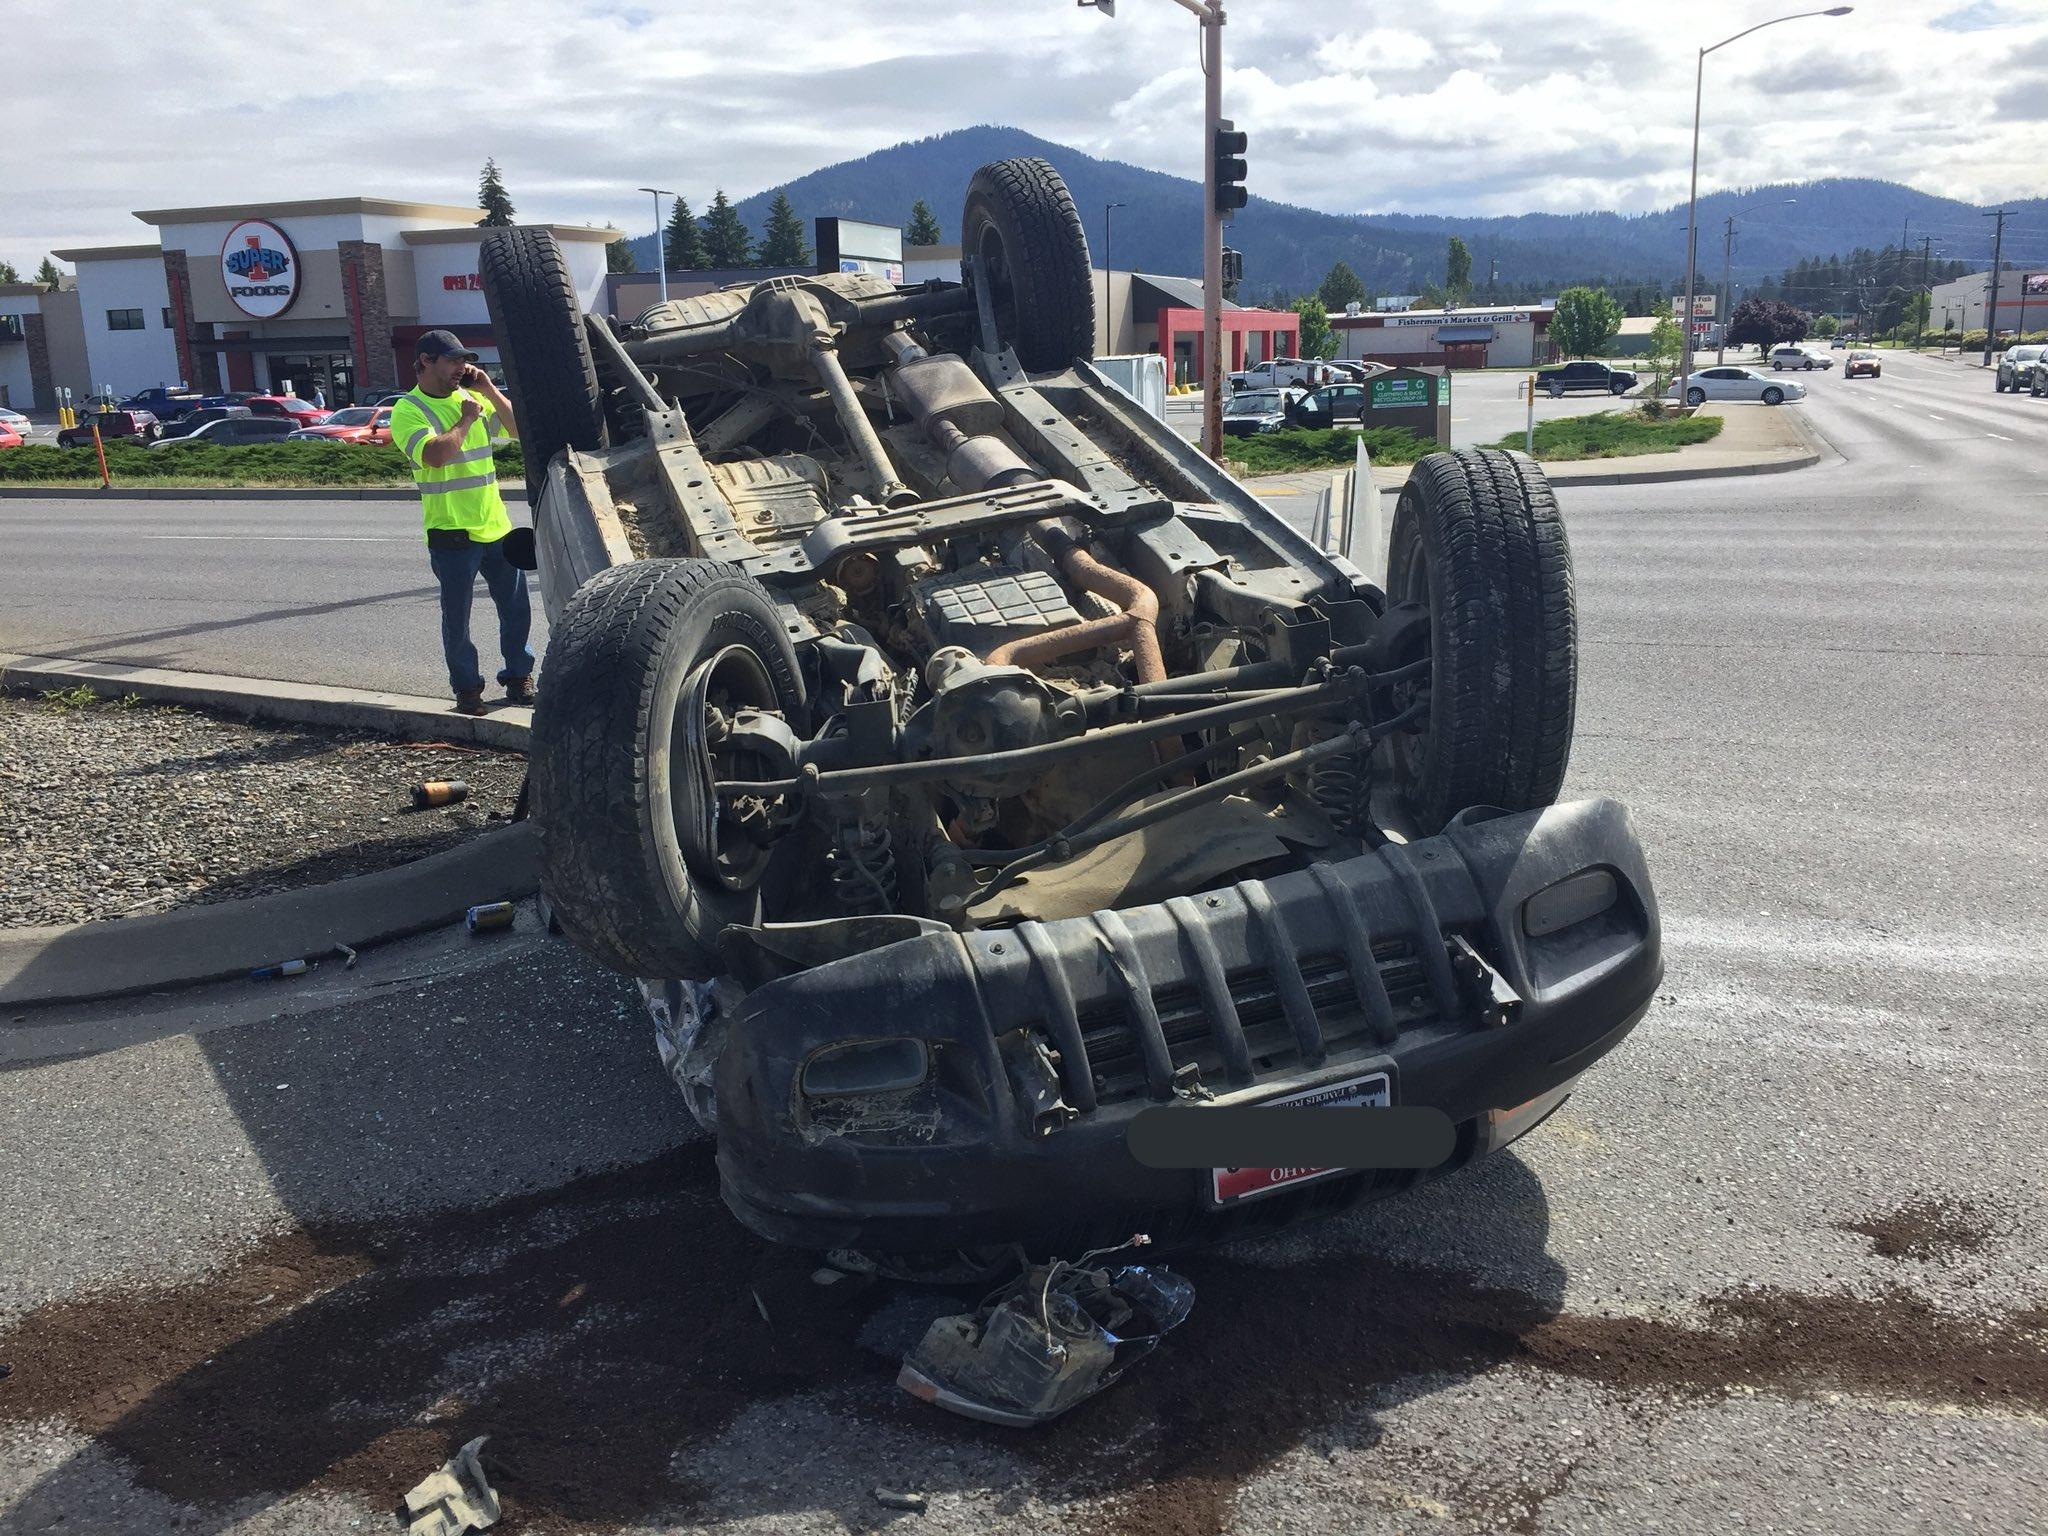 A Crash On US Highway 95 Resulted In Injuries And Driver Was Arrested